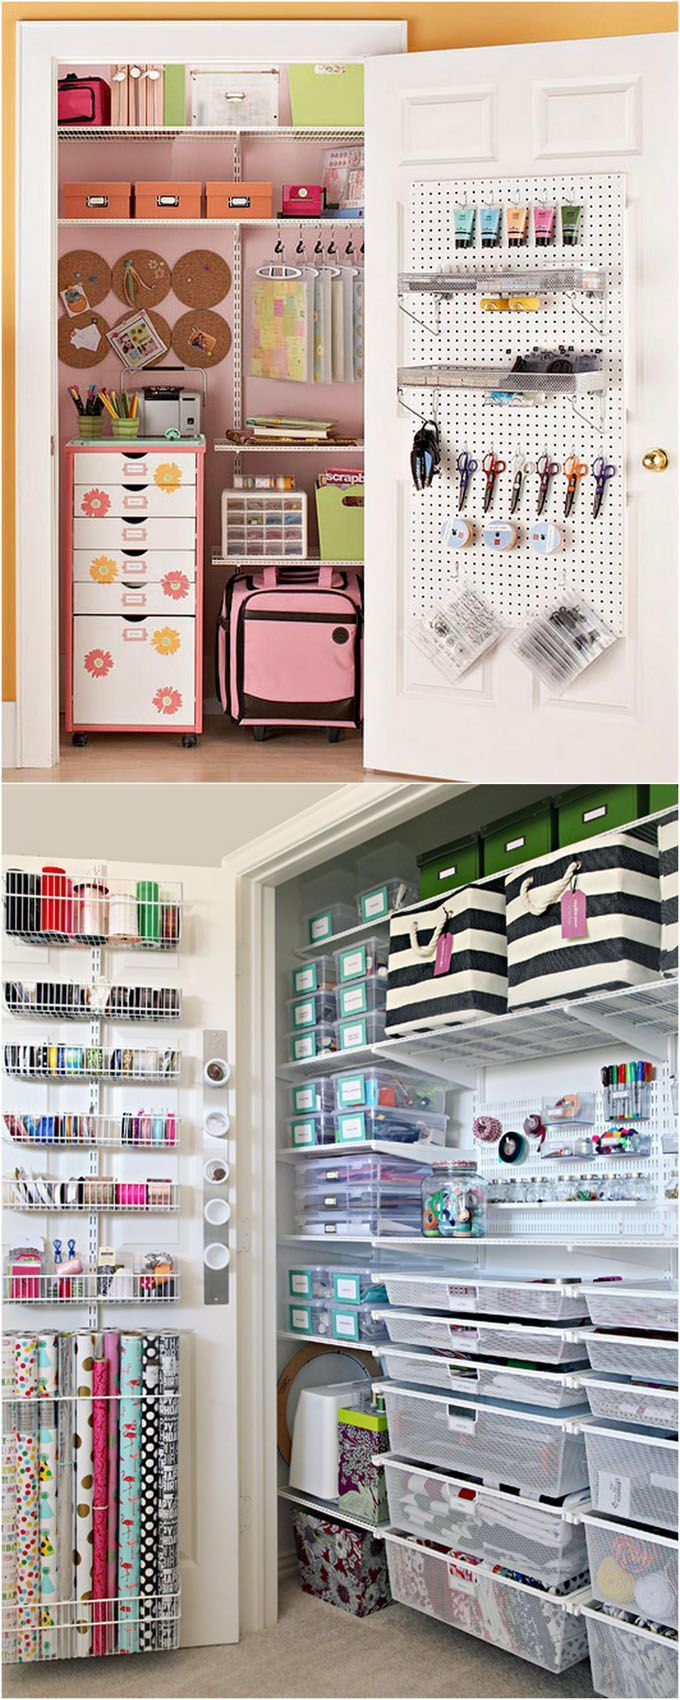 21 Great Ways To Easily Organize Your Workshop And Craft Room